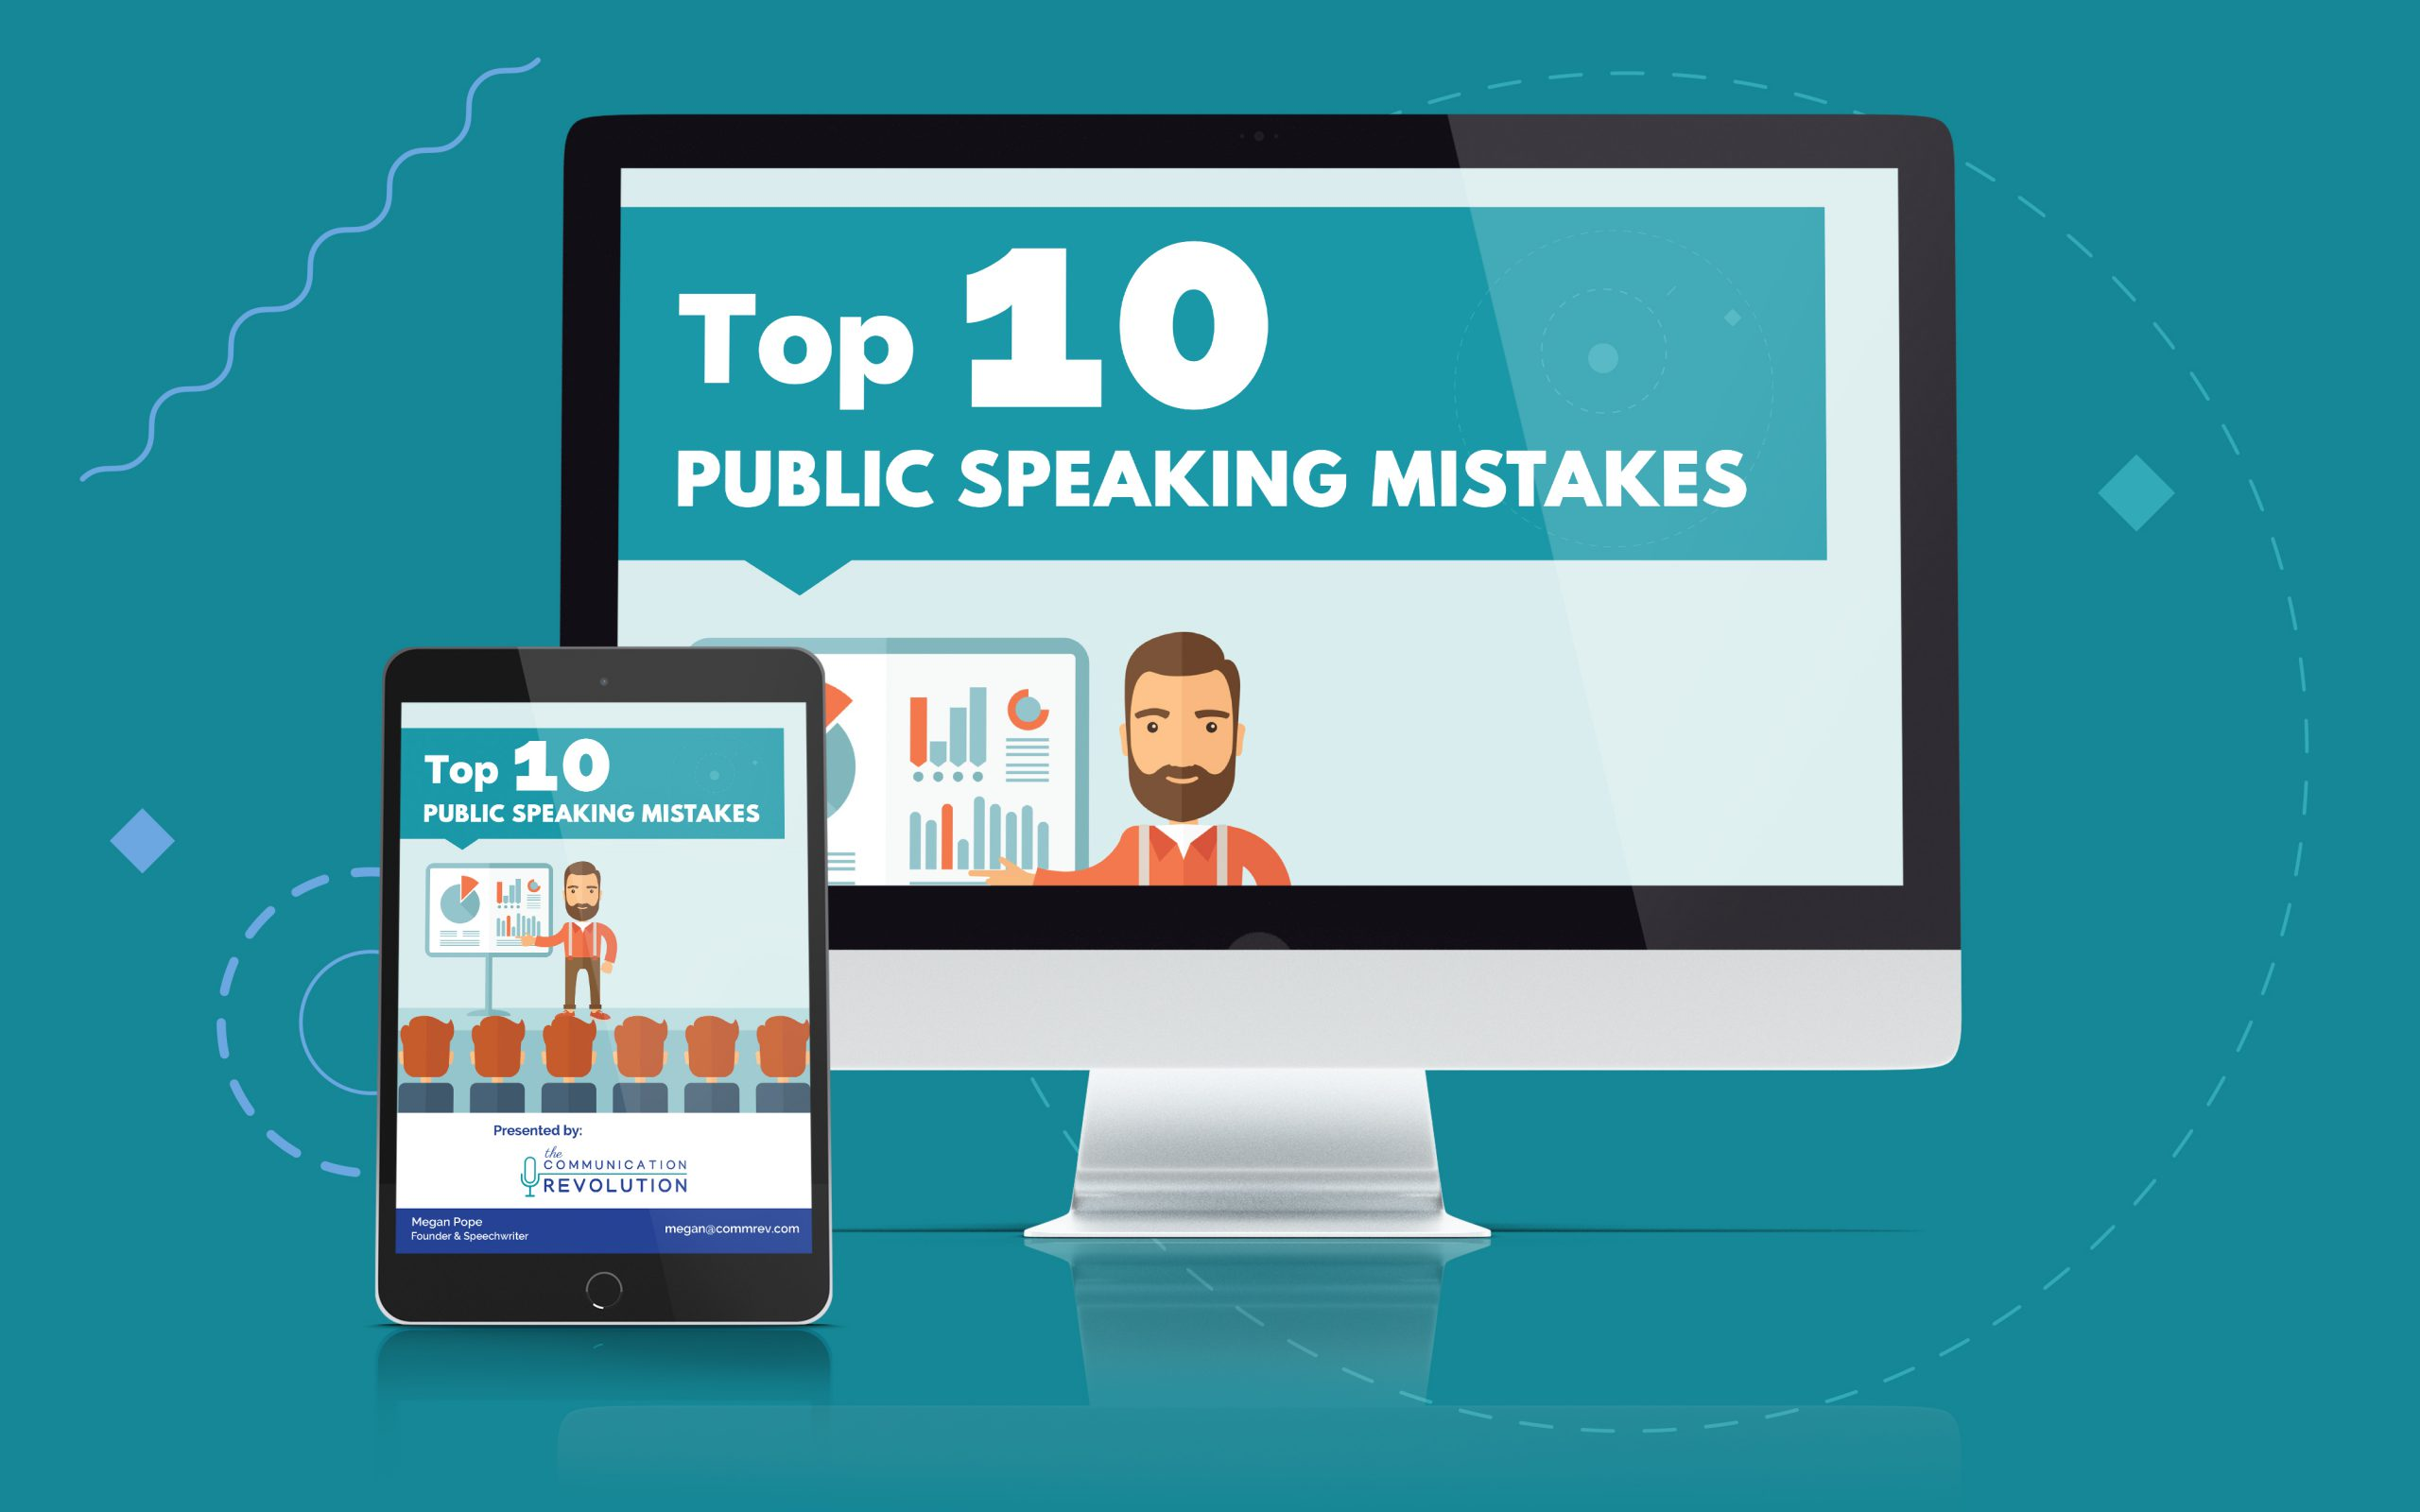 Top 10 Mistakes Mockup